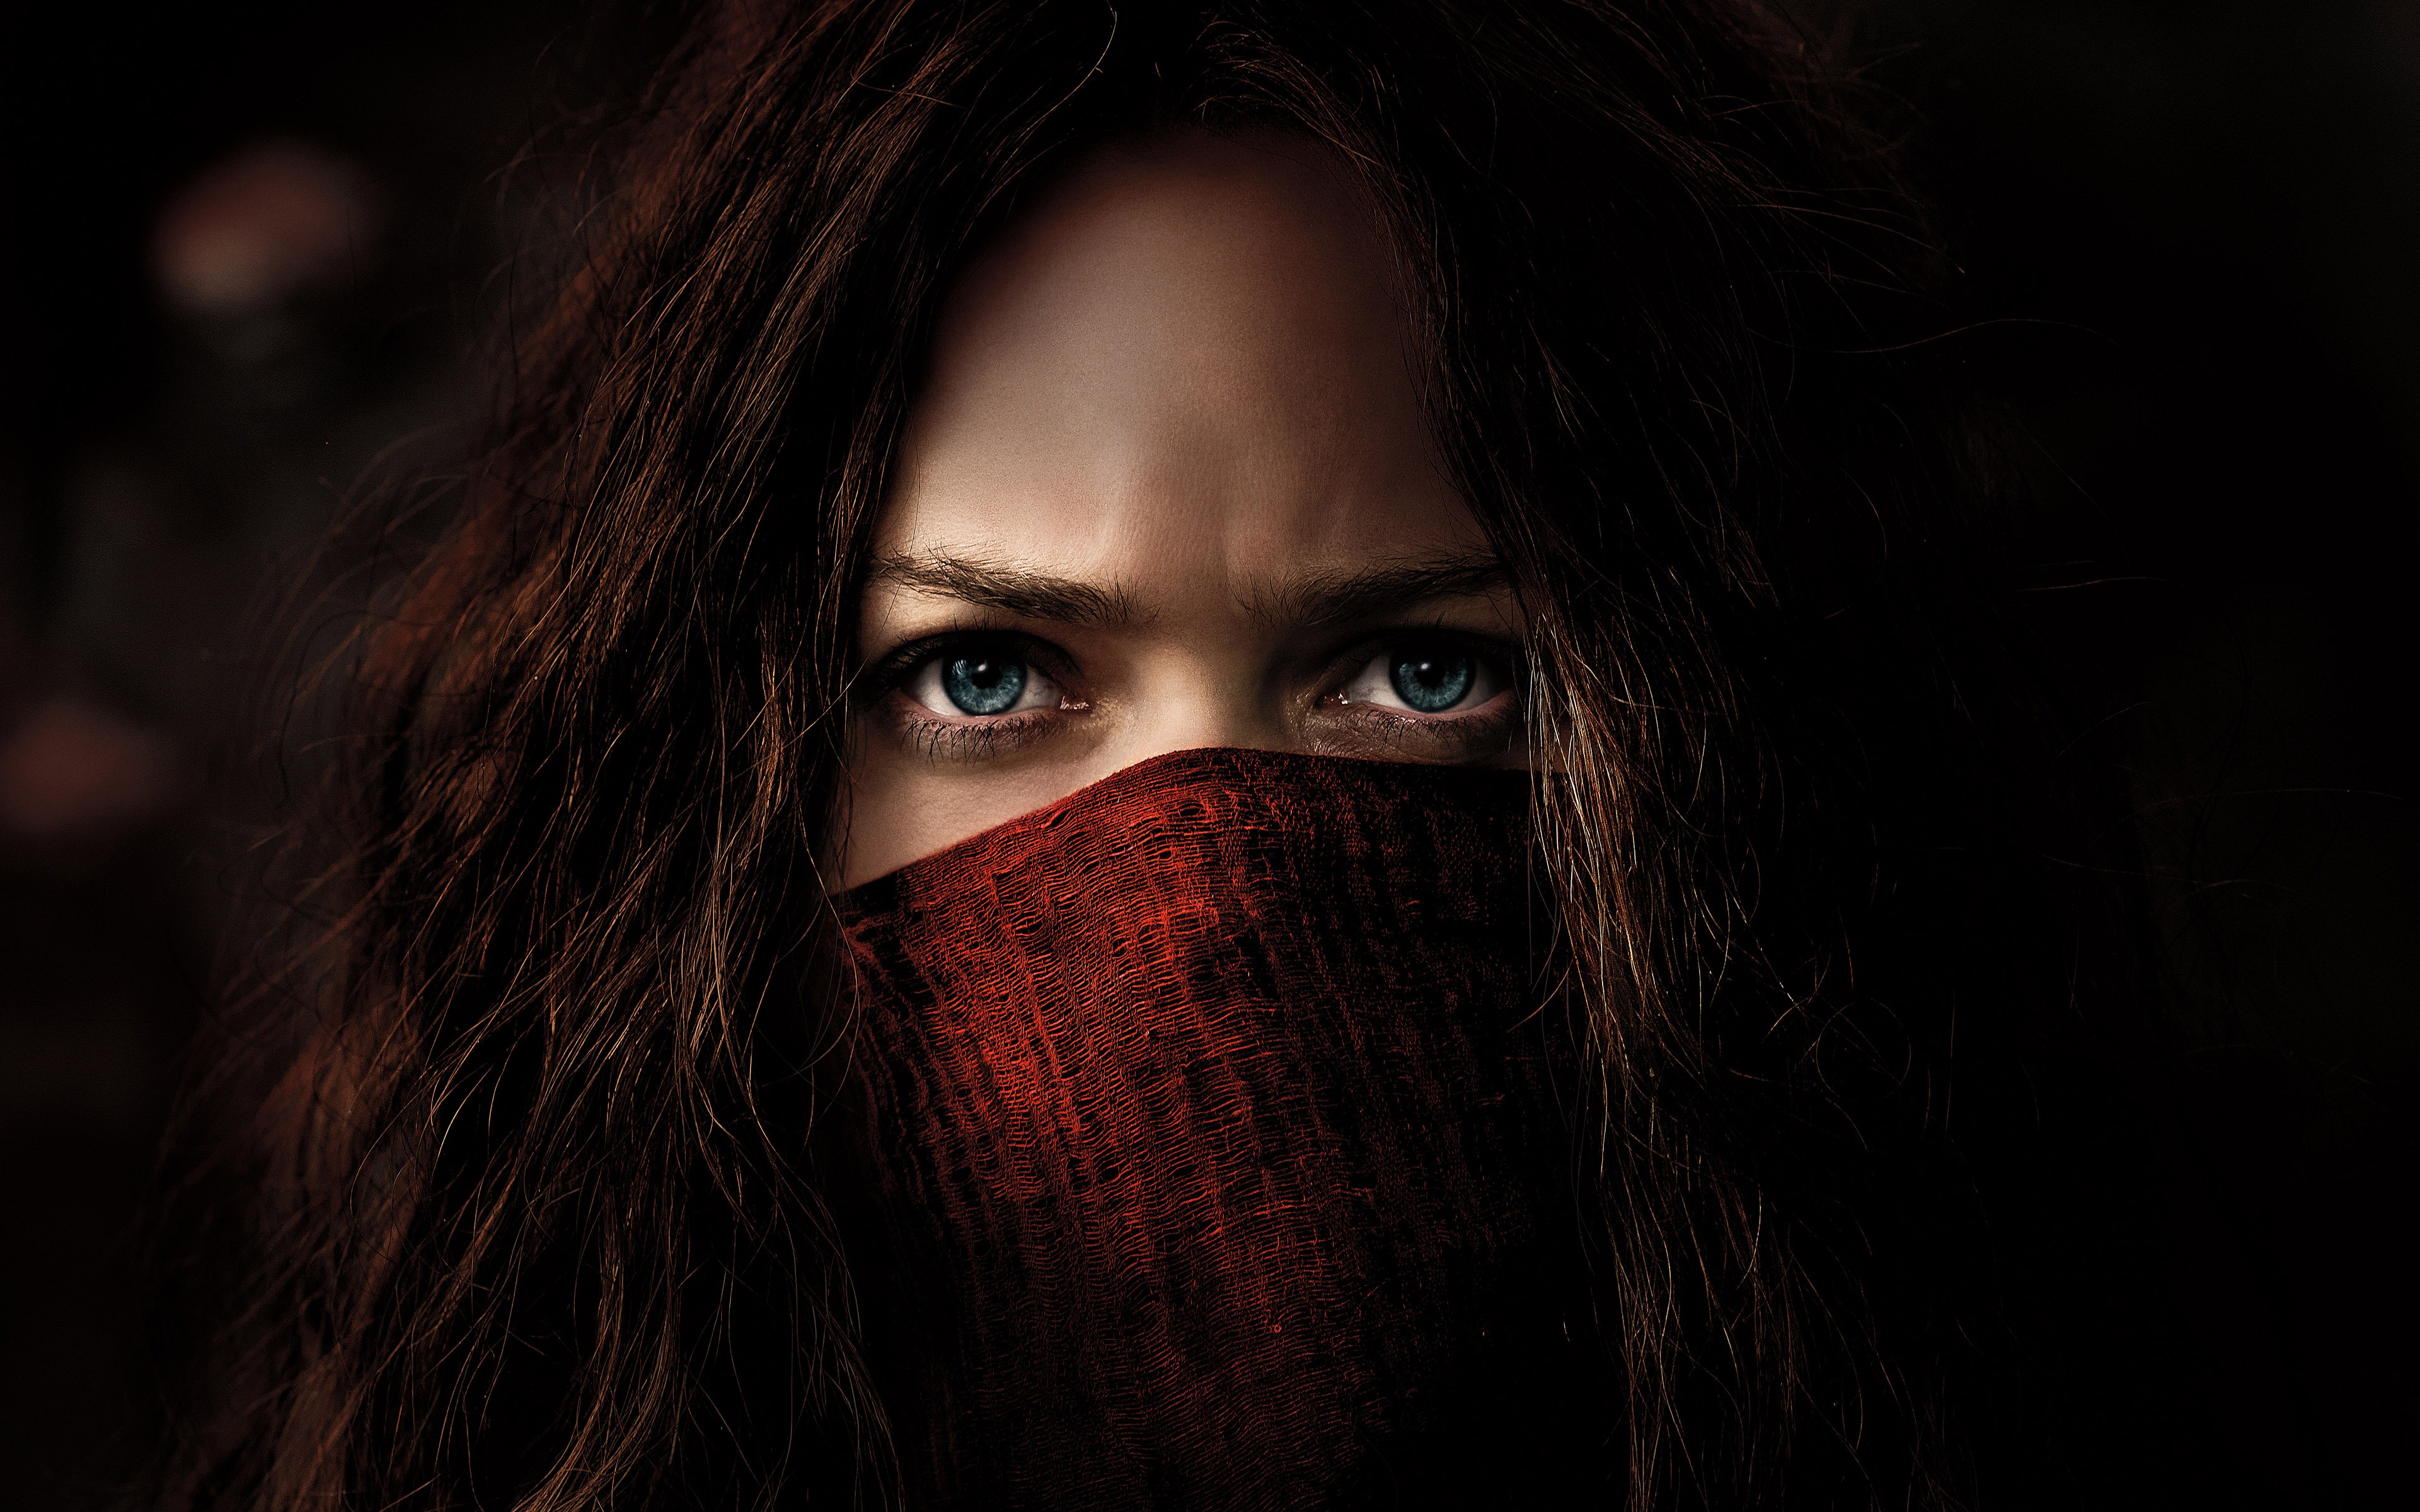 Mortal Engines Movie Hera Hilmar Photo 4k Wallpaper 3840x2400